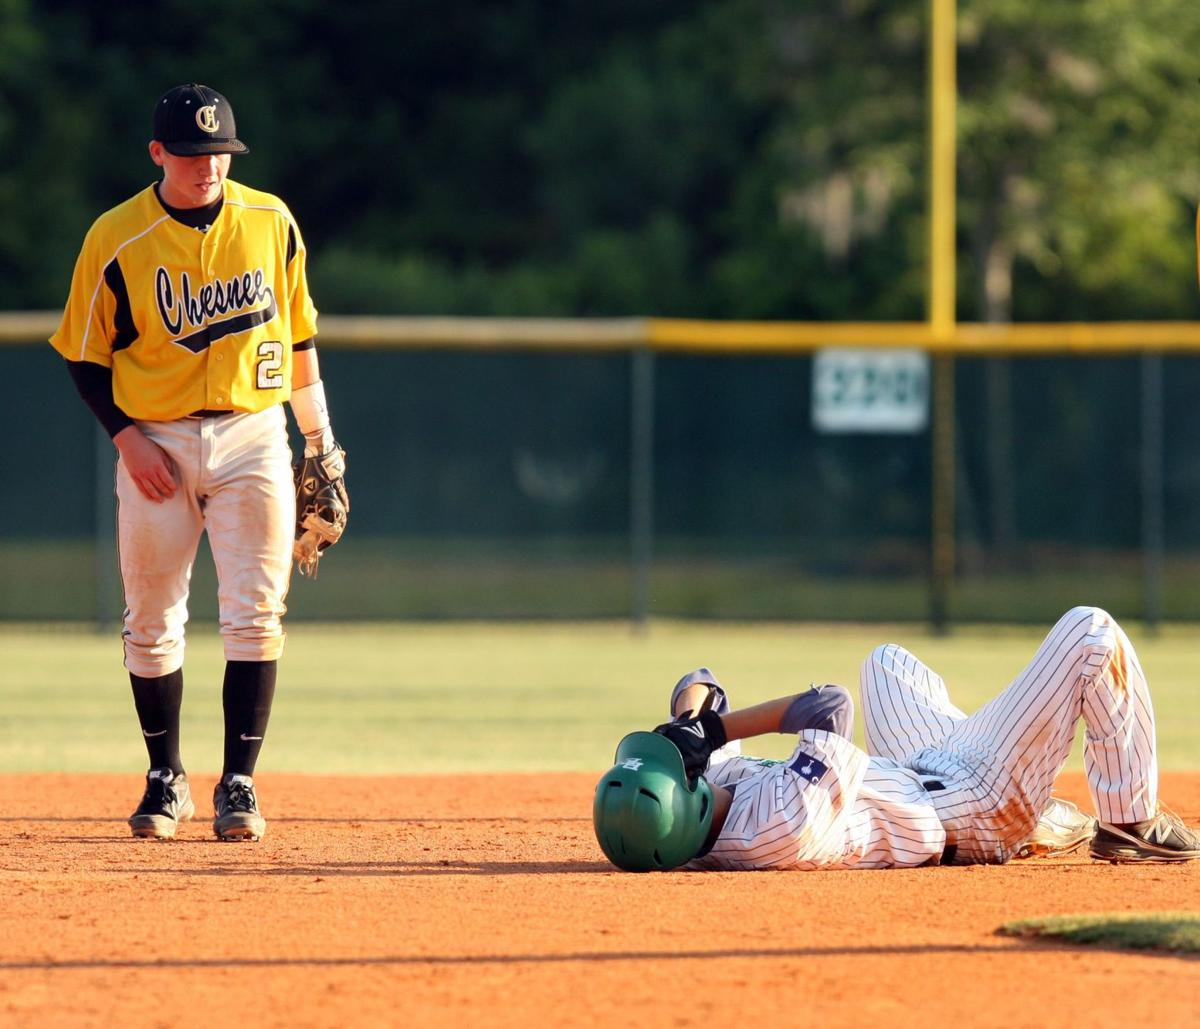 Injury raises questions of baseball safety